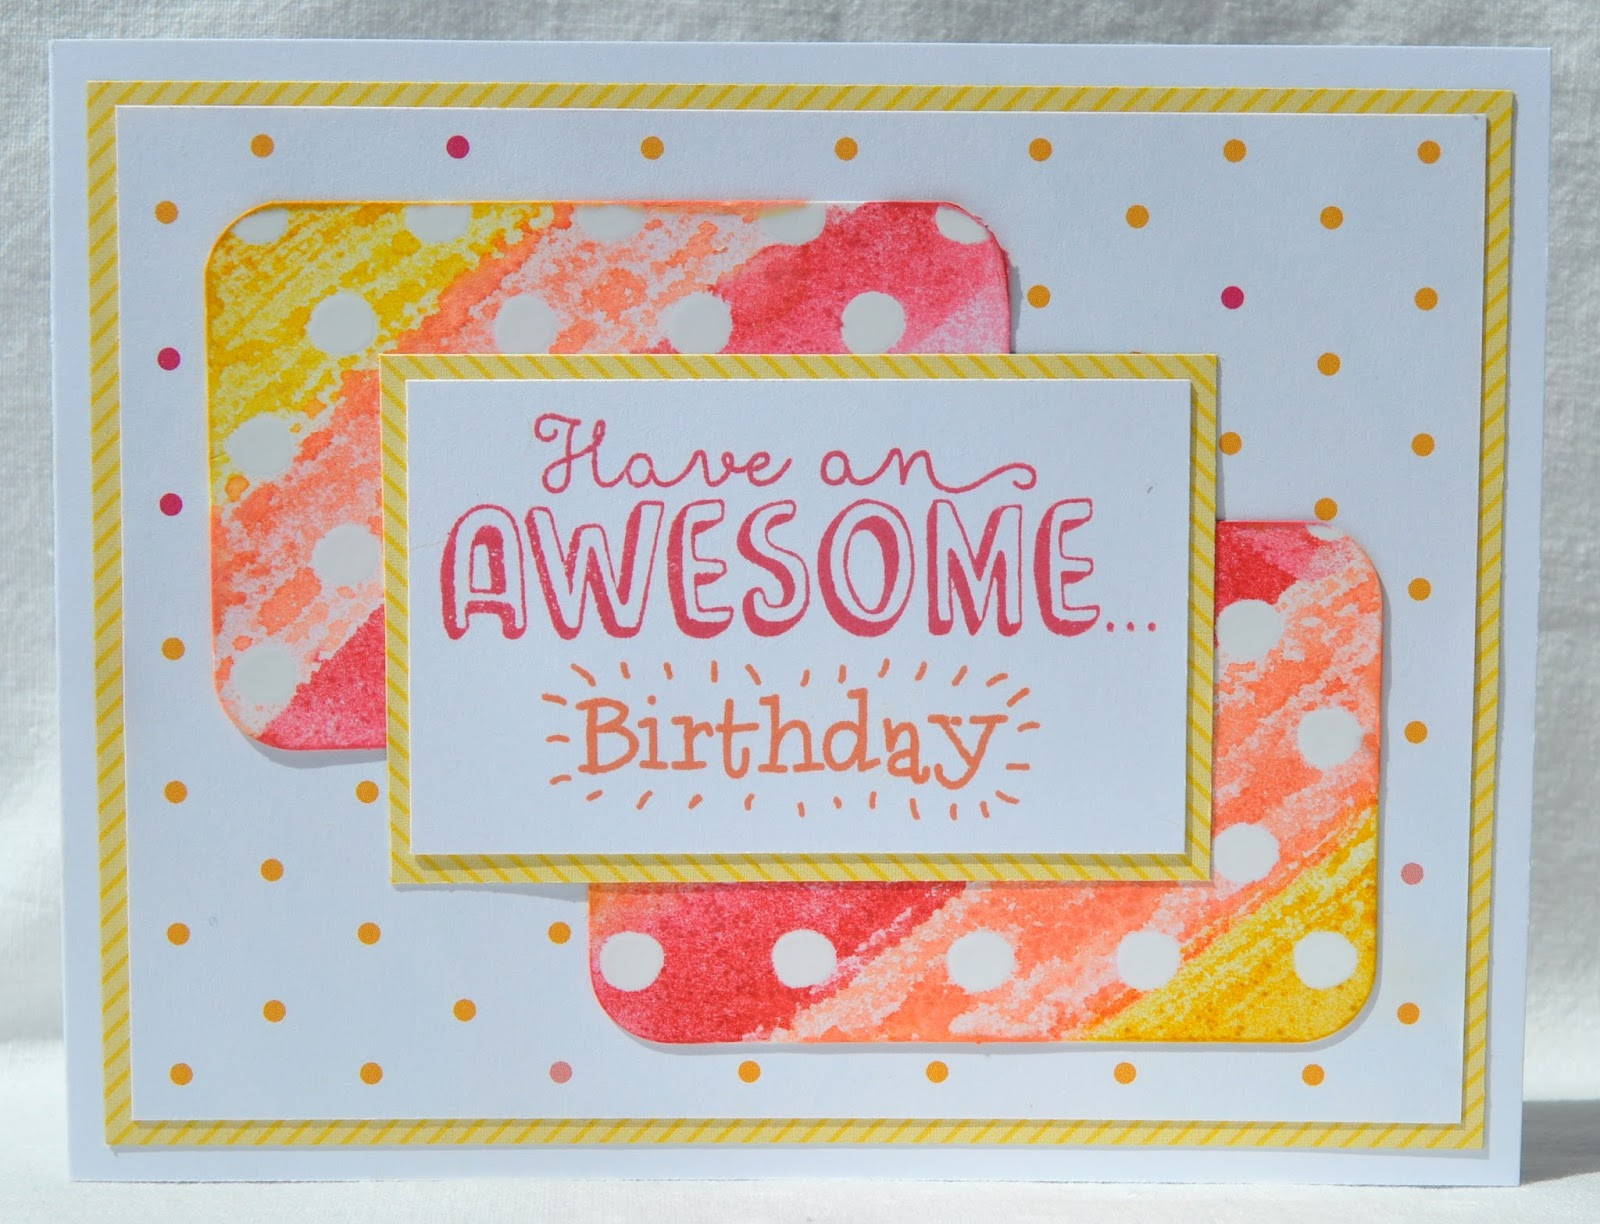 DATS My Style Awesome Birthday Card – Awesome Birthday Cards